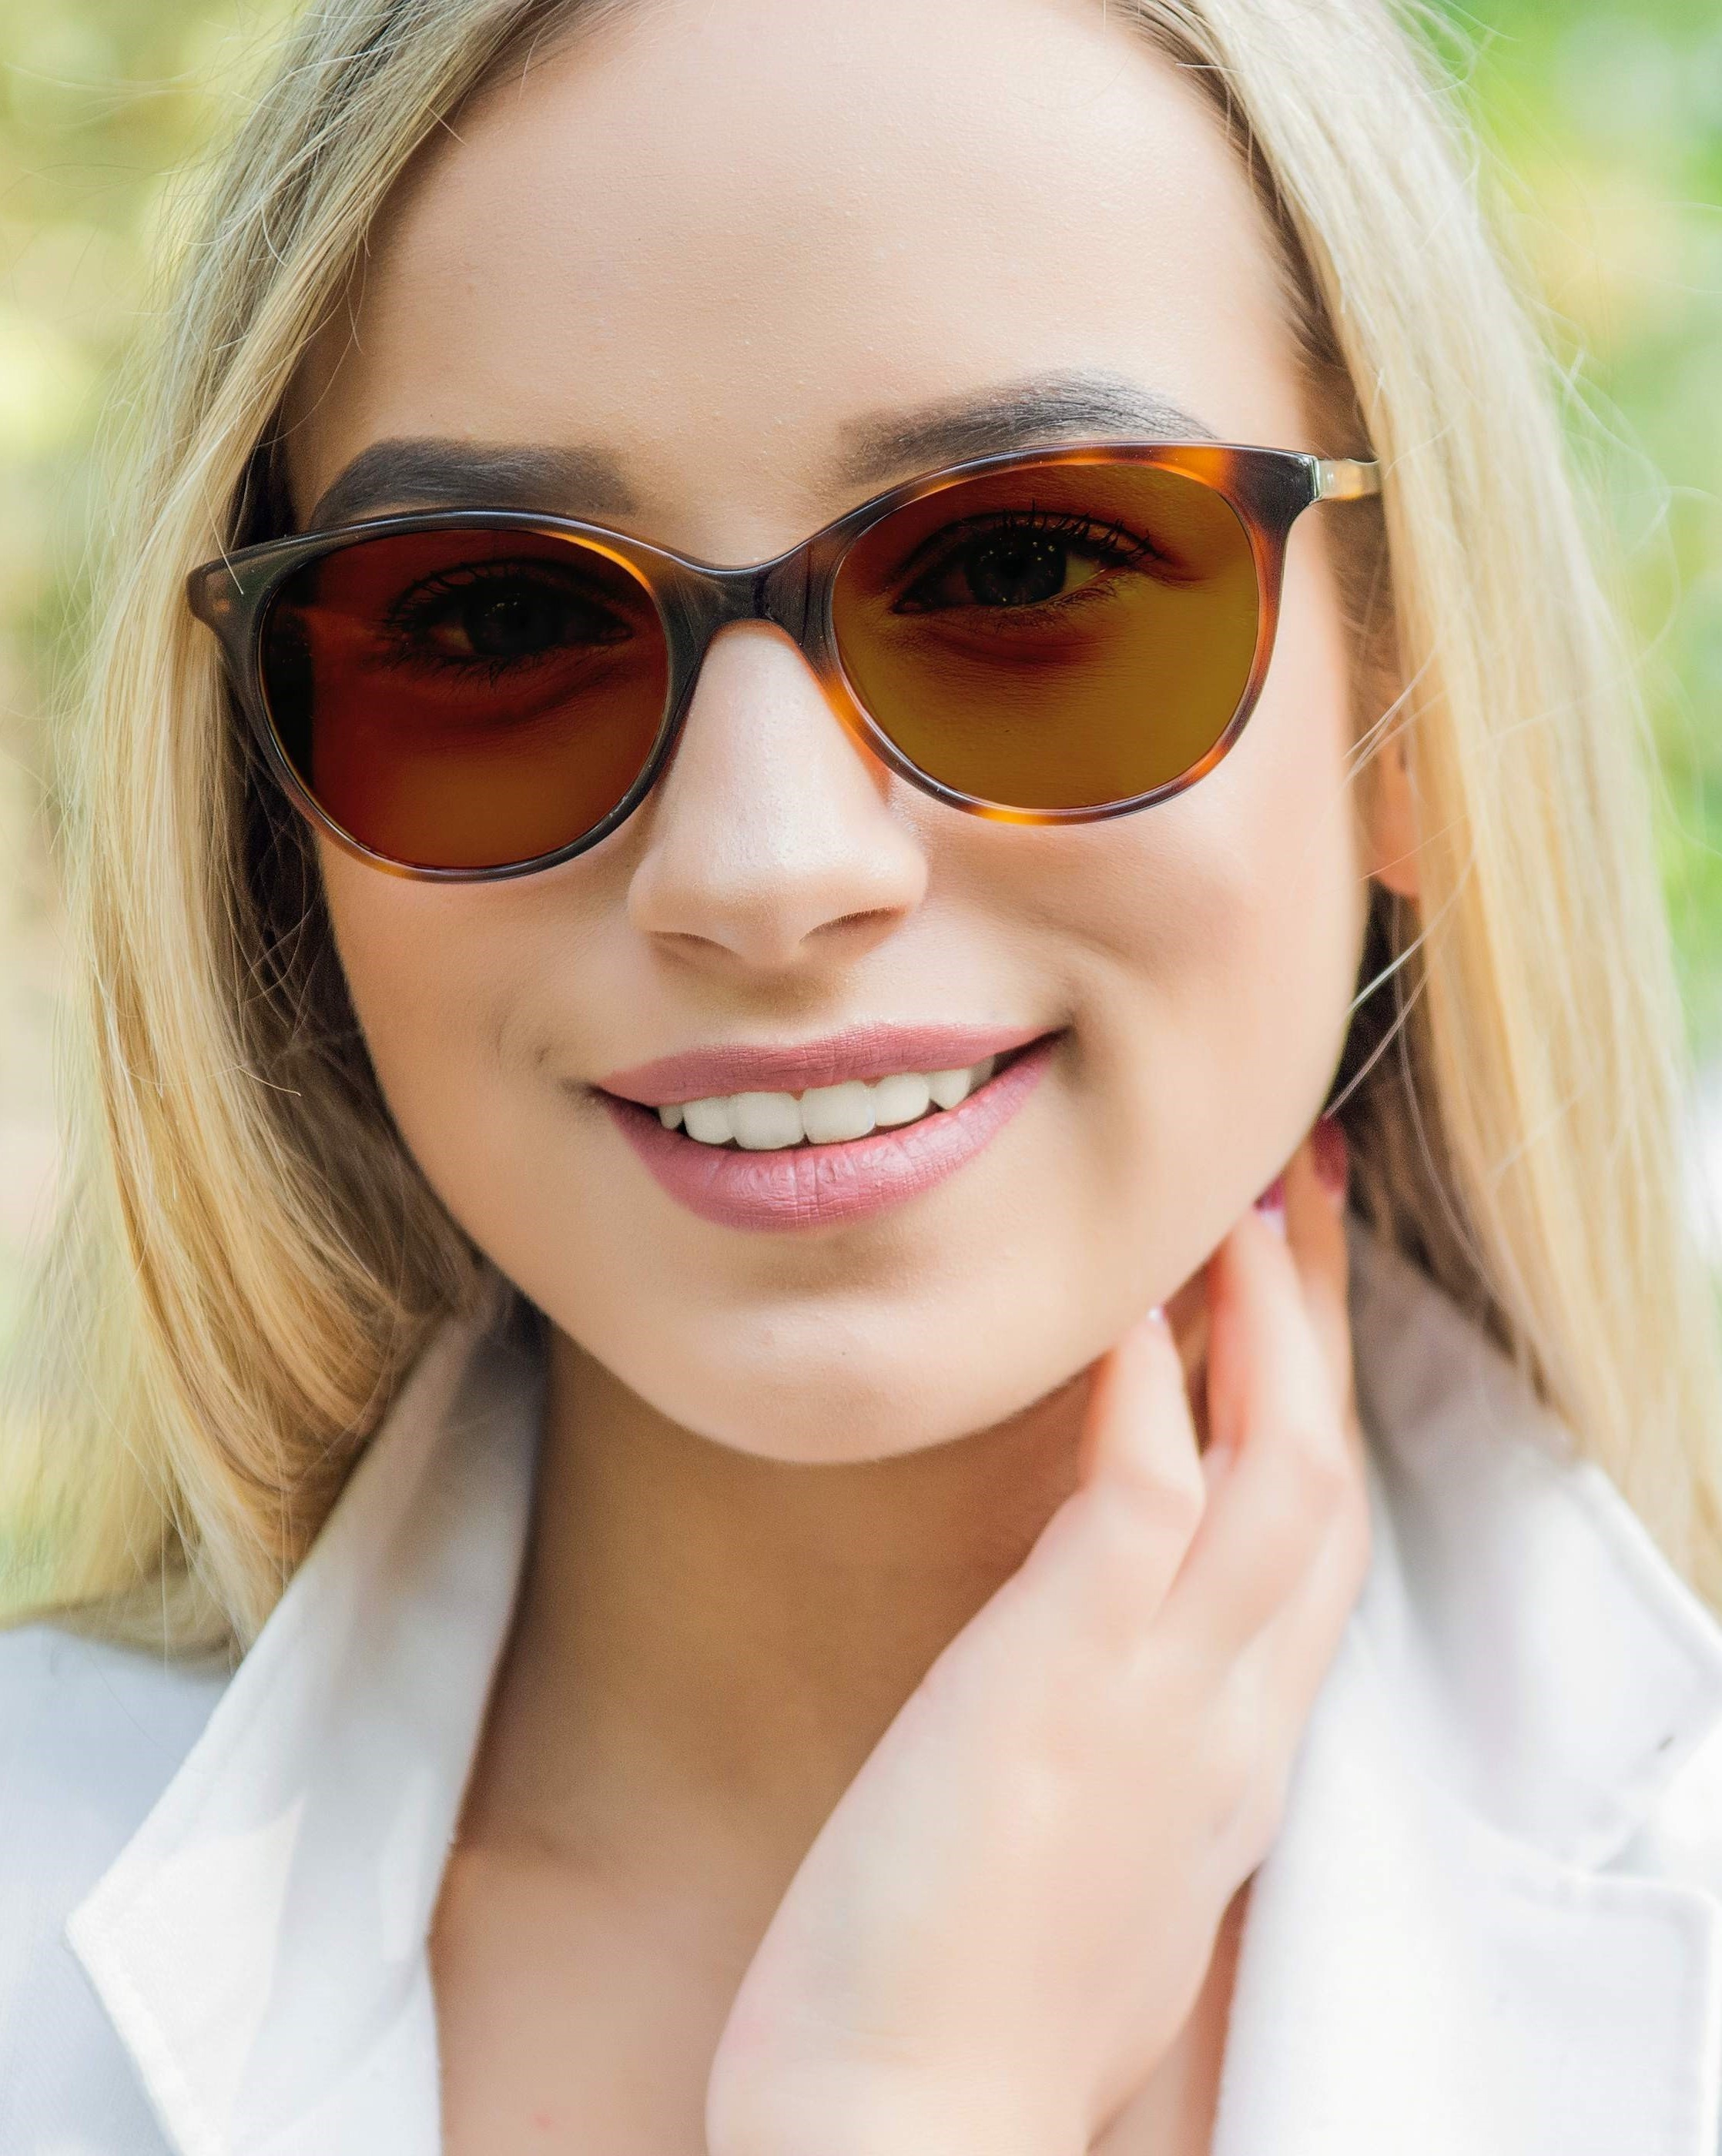 Kodak Transitions® Lenses adapt to varying light conditions and are one of the best everyday lenses for active lifestyles.